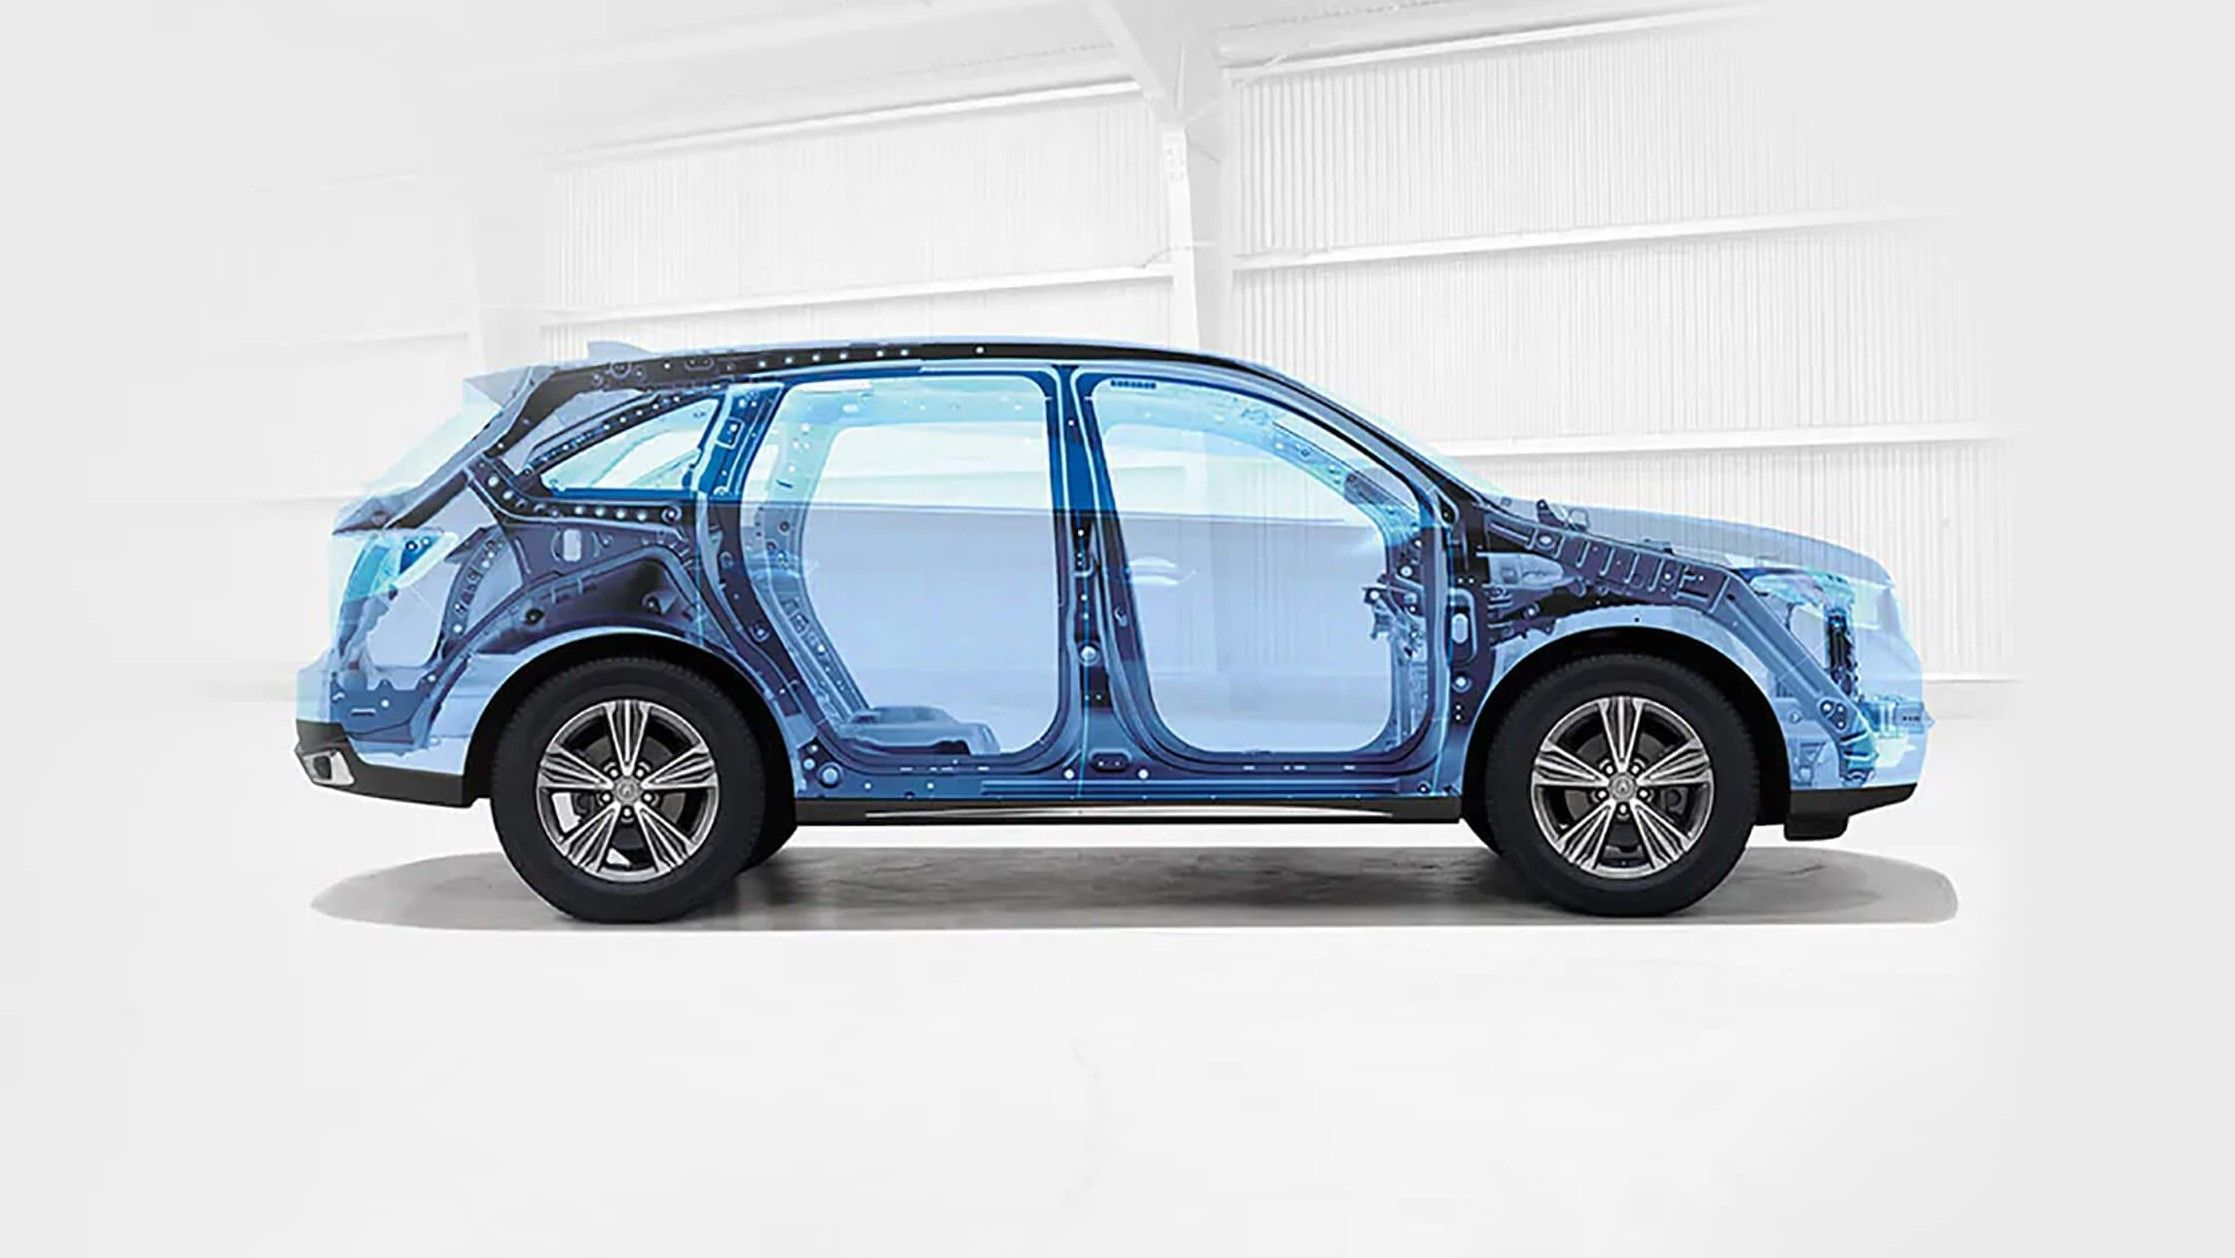 2021 acura mdx structural layout